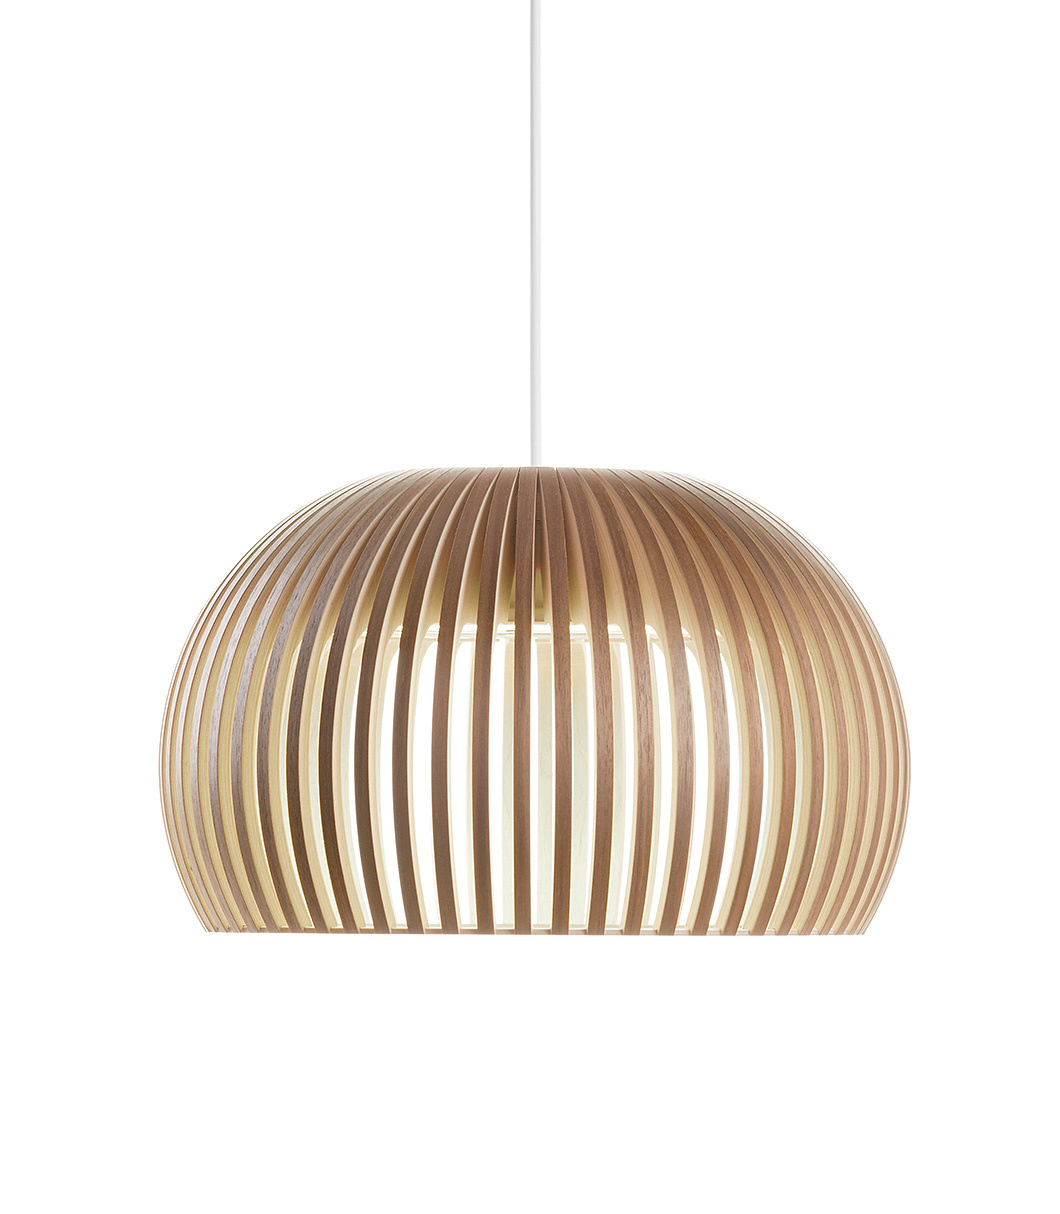 Atto 5000 pendant lamp color walnut